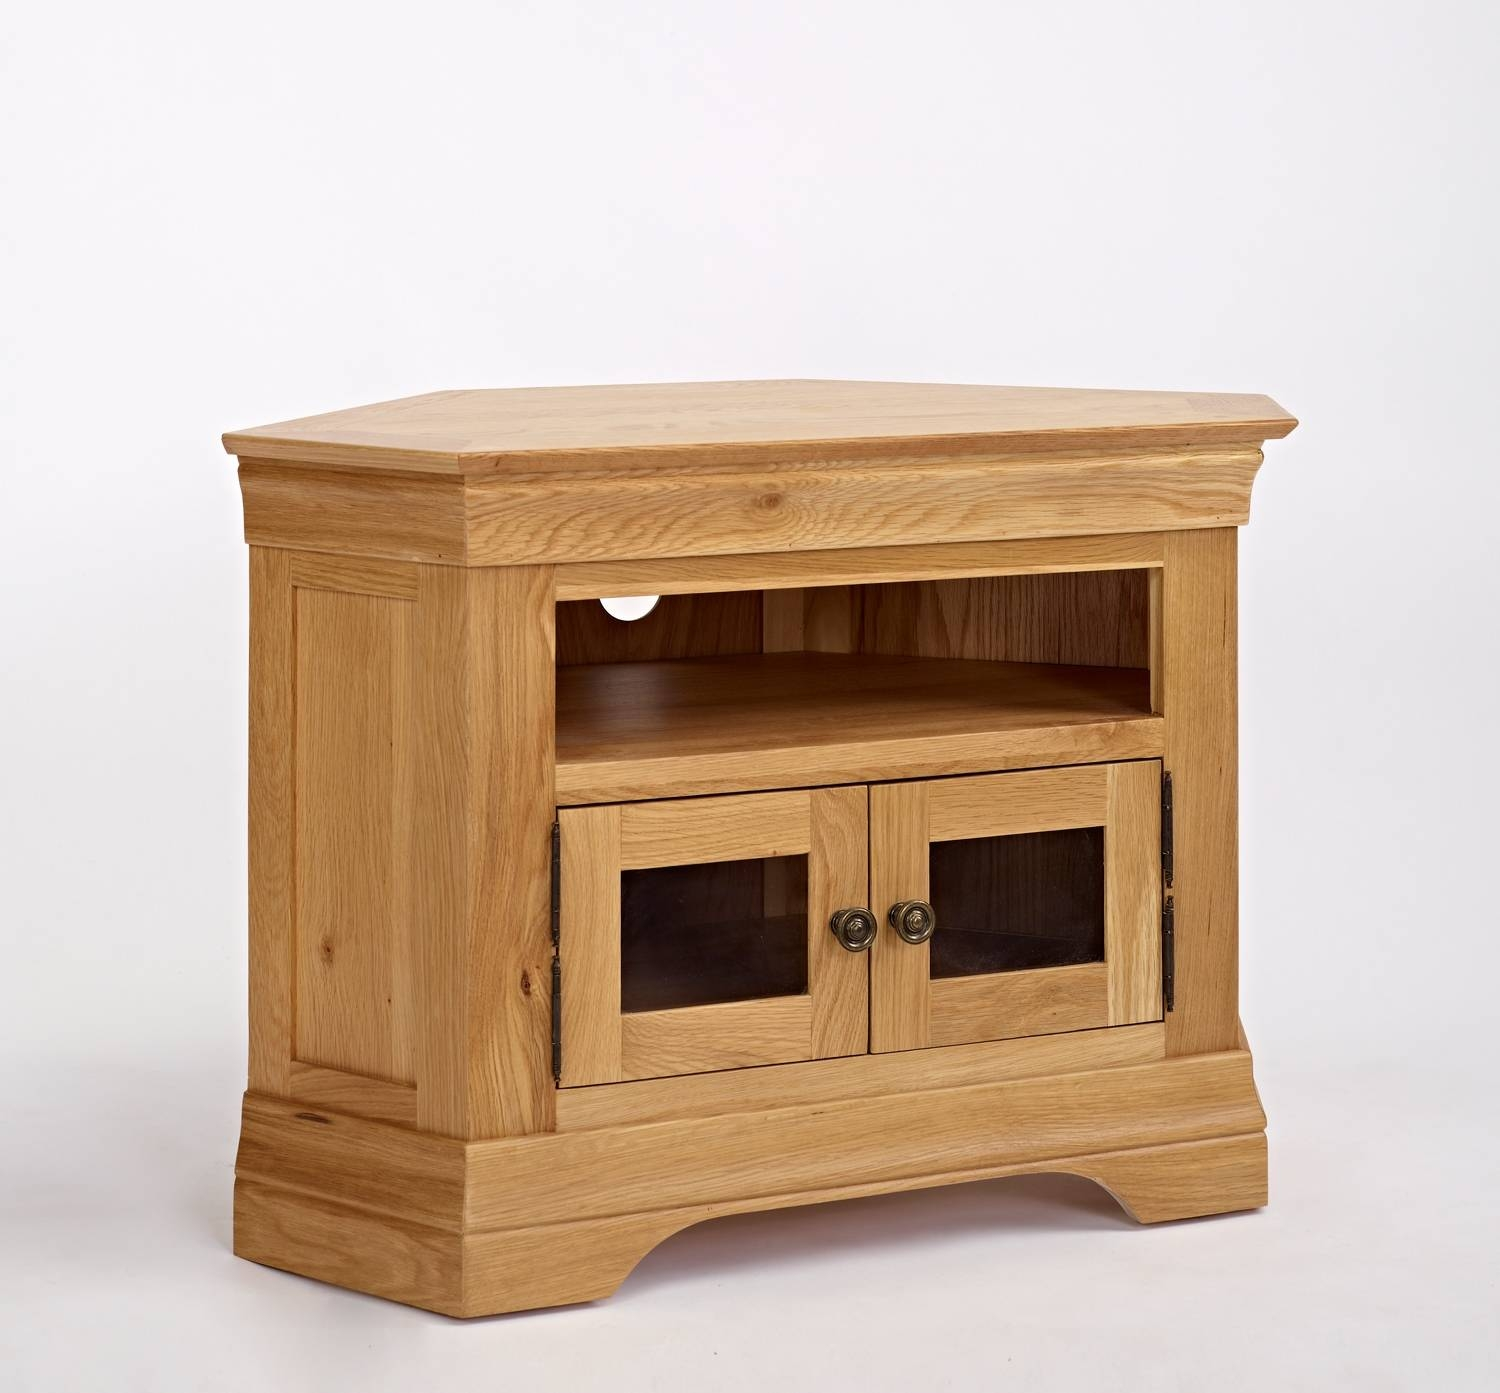 French Modern Oak Corner Tv Unit | Hampshire Furniture within Small Oak Corner Tv Stands (Image 5 of 15)